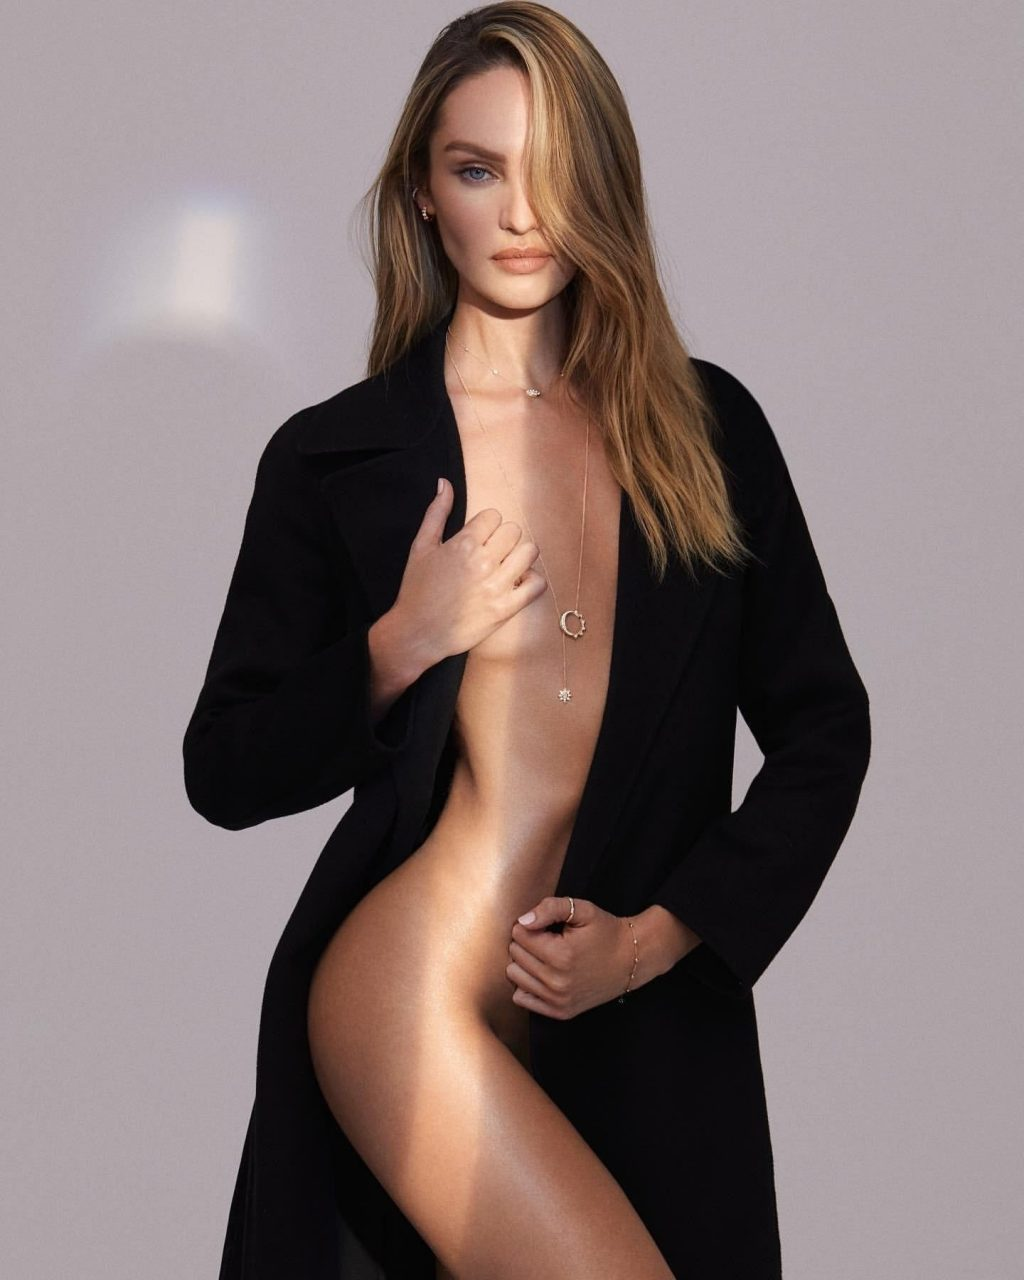 Candice Swanepoel Sexy & Topless (5 Photos)